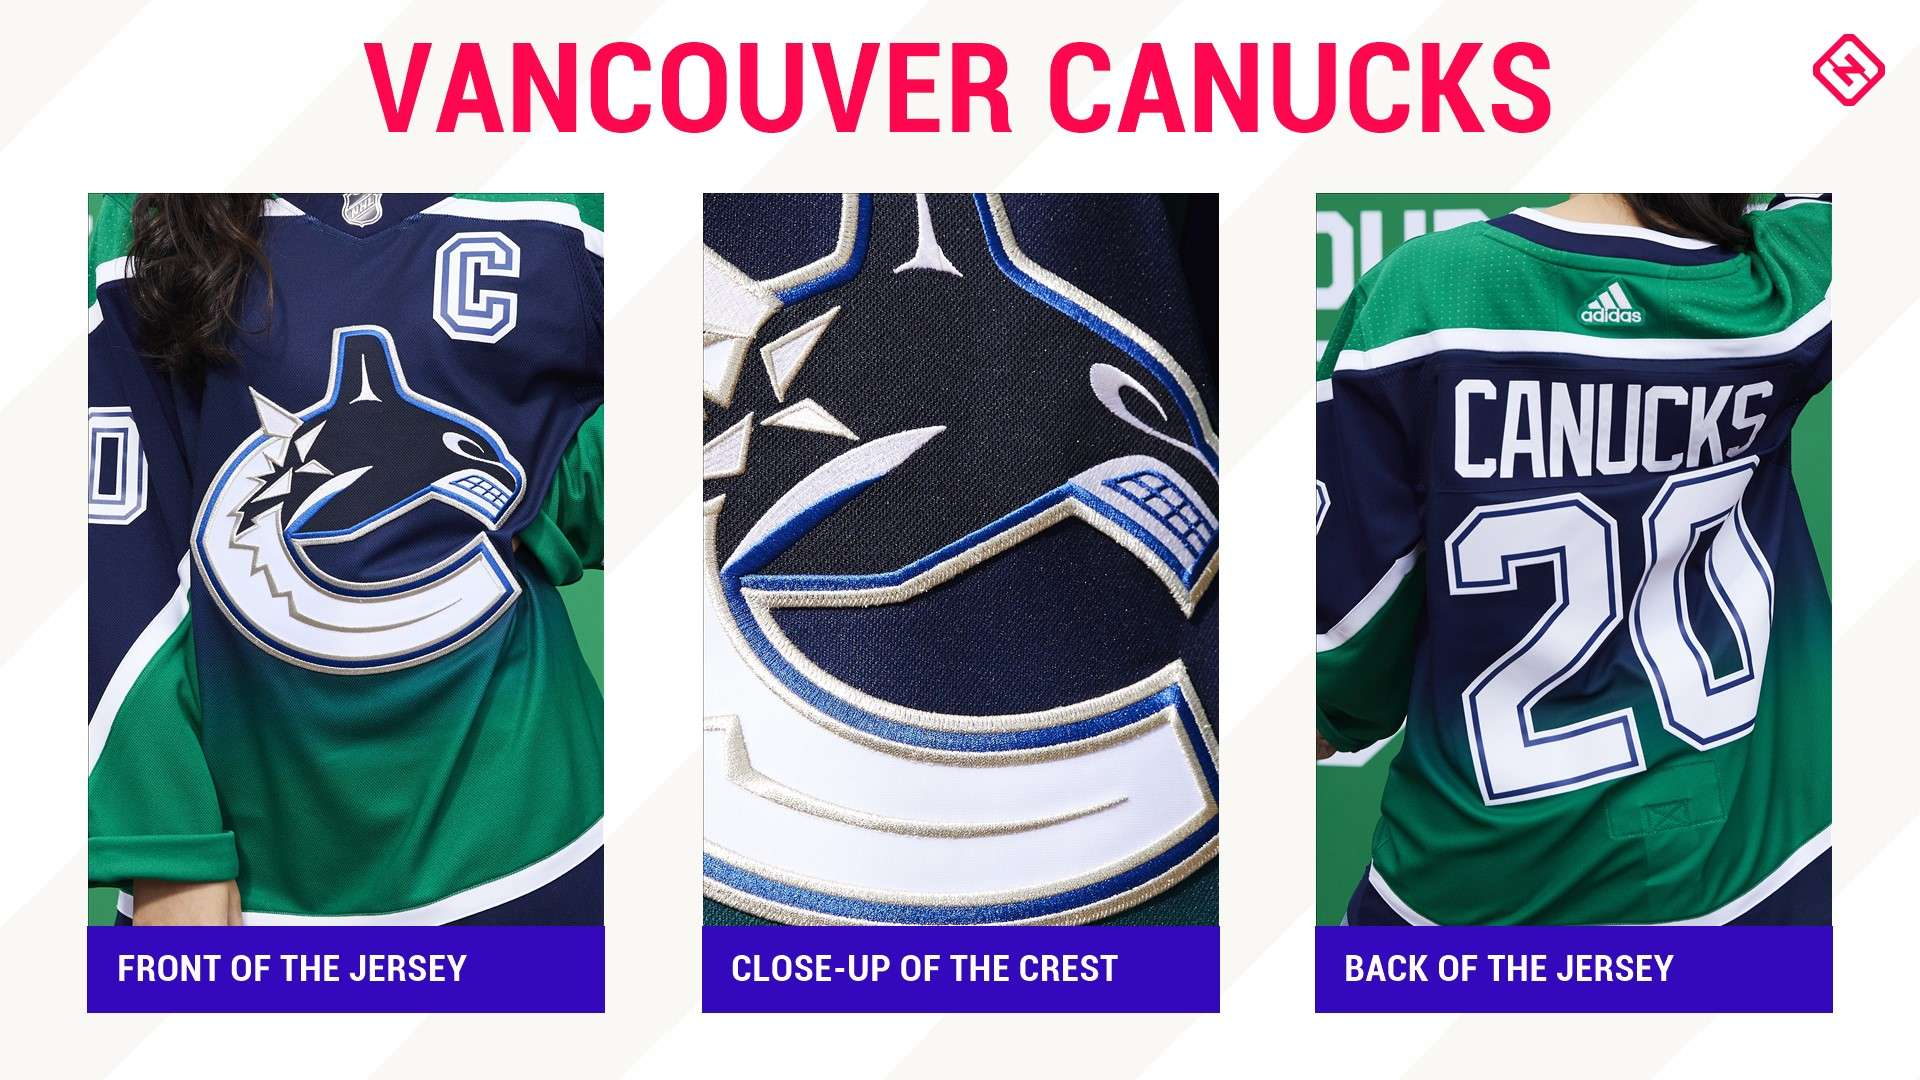 Nhl Reverse Retro Jerseys Ranked The Best Worst Of Adidas 2021 Designs For Every Team Sporting News